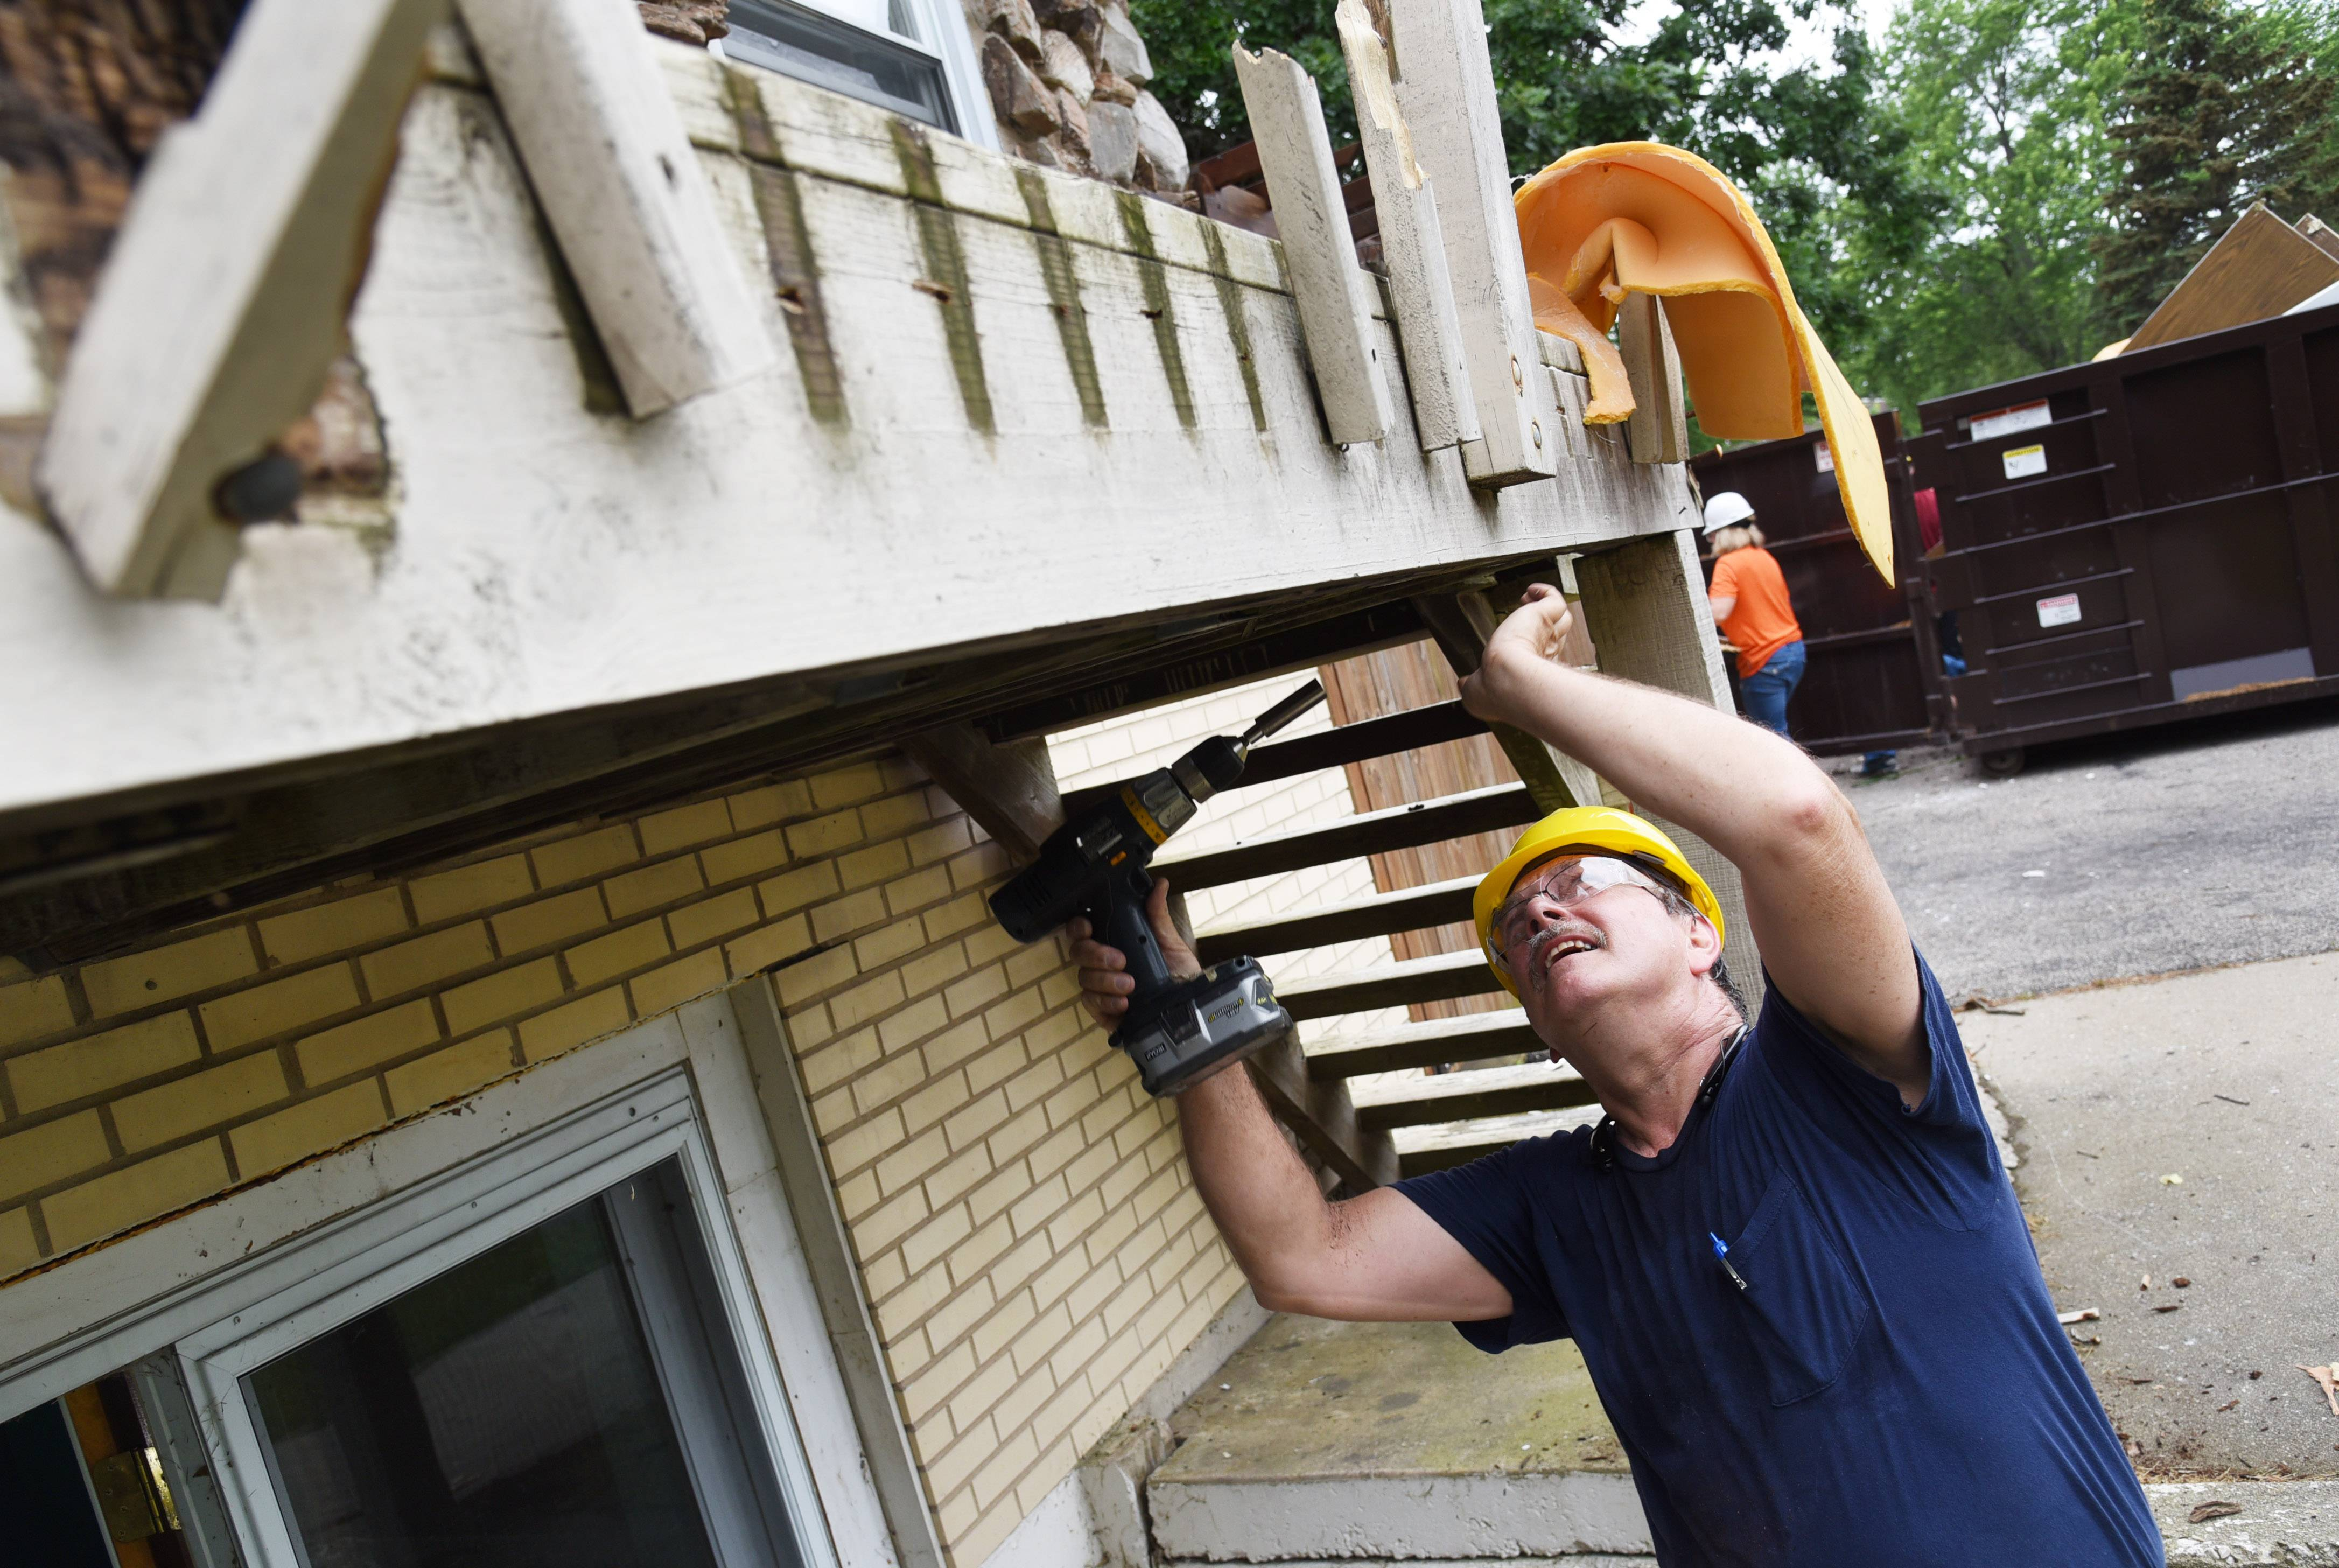 Dean DePew of The Colton Companies, Inc. in Waukegan, removes bolts from the front porch of a house on Woodland Drive in Round Lake Beach. The foreclosure was purchased by the Affordable Housing Corporation of Lake County and will be rehabbed and resold at an affordable price.